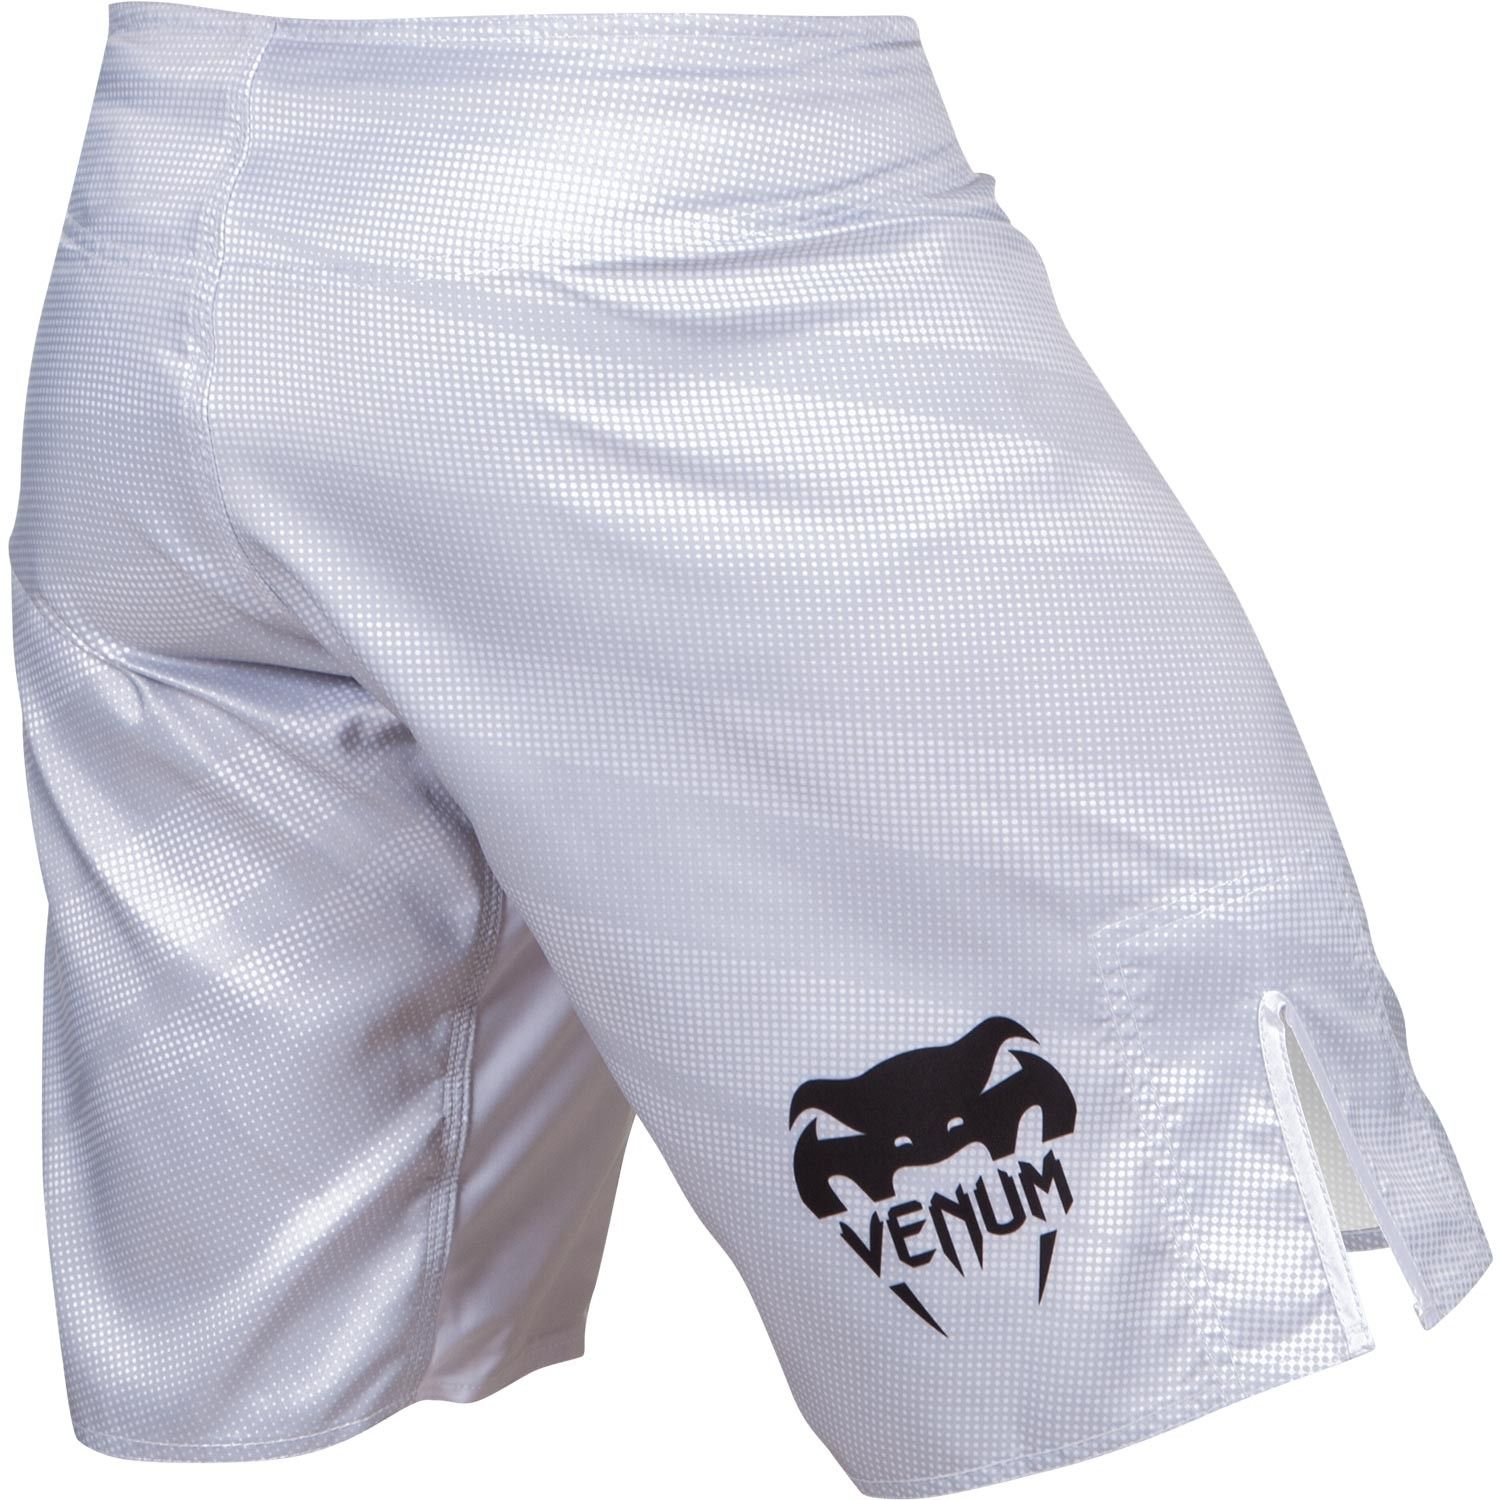 Venum Radiance Fightshorts - White